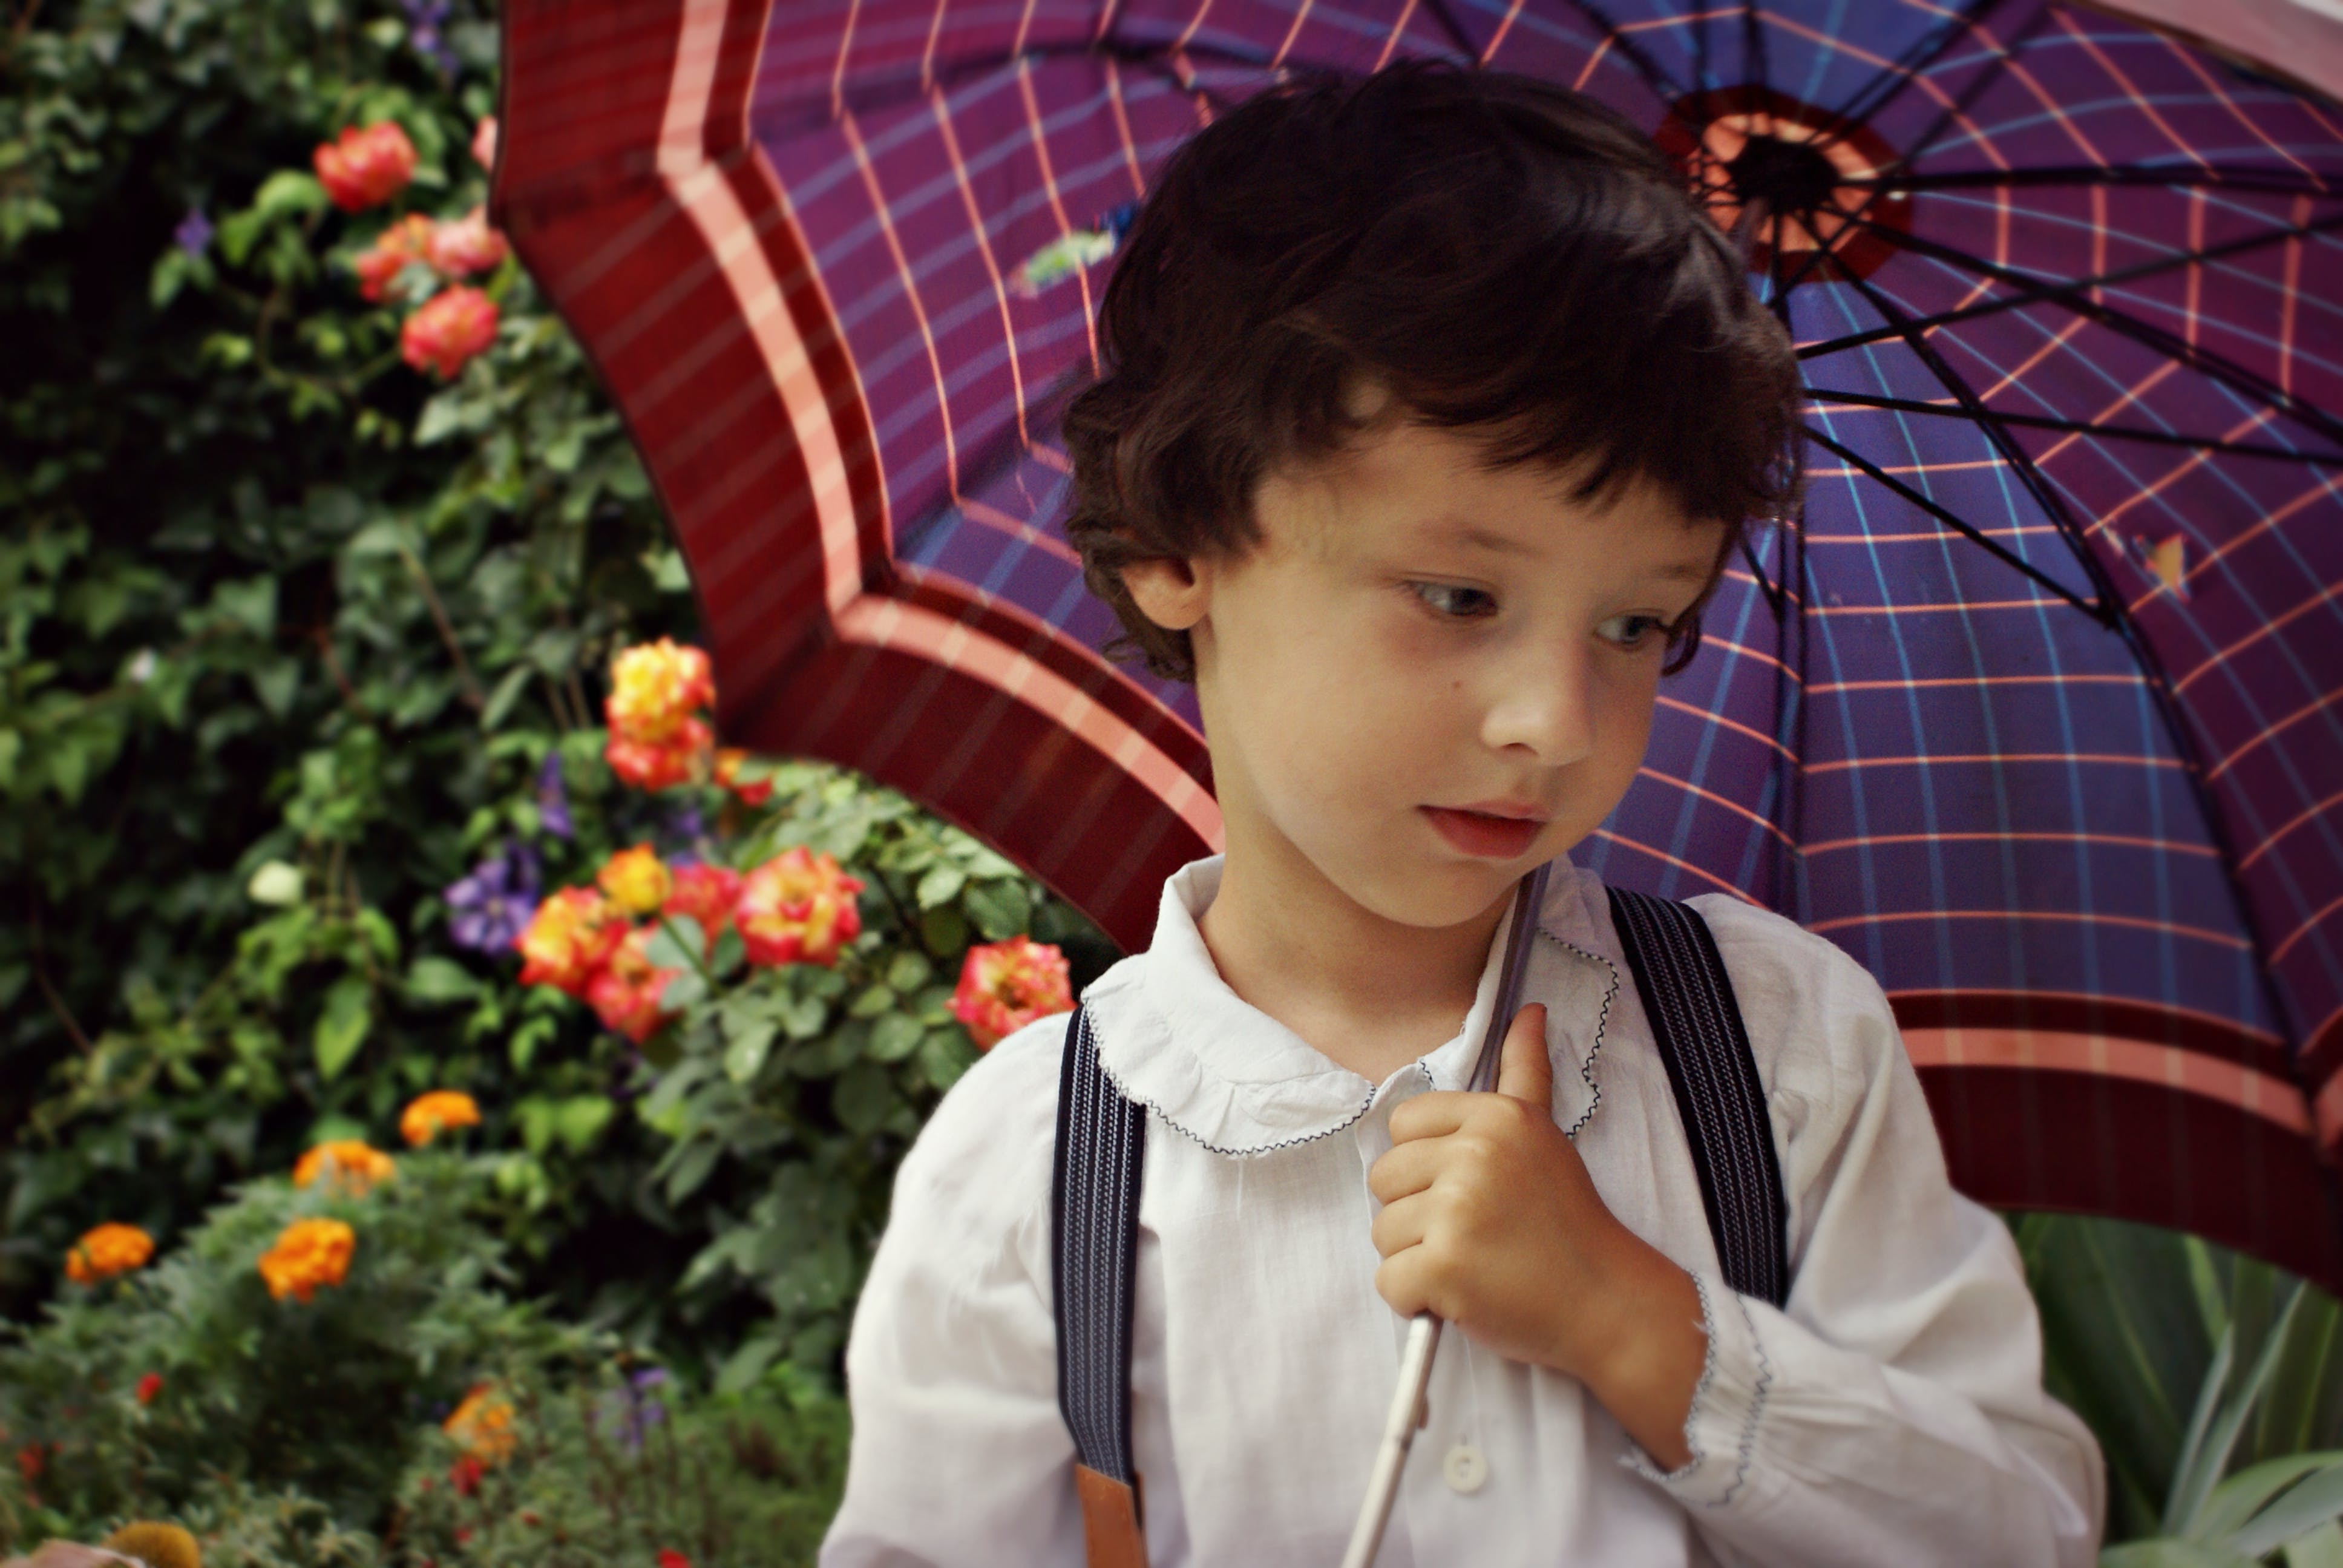 Boy Holding Purple Umbrella